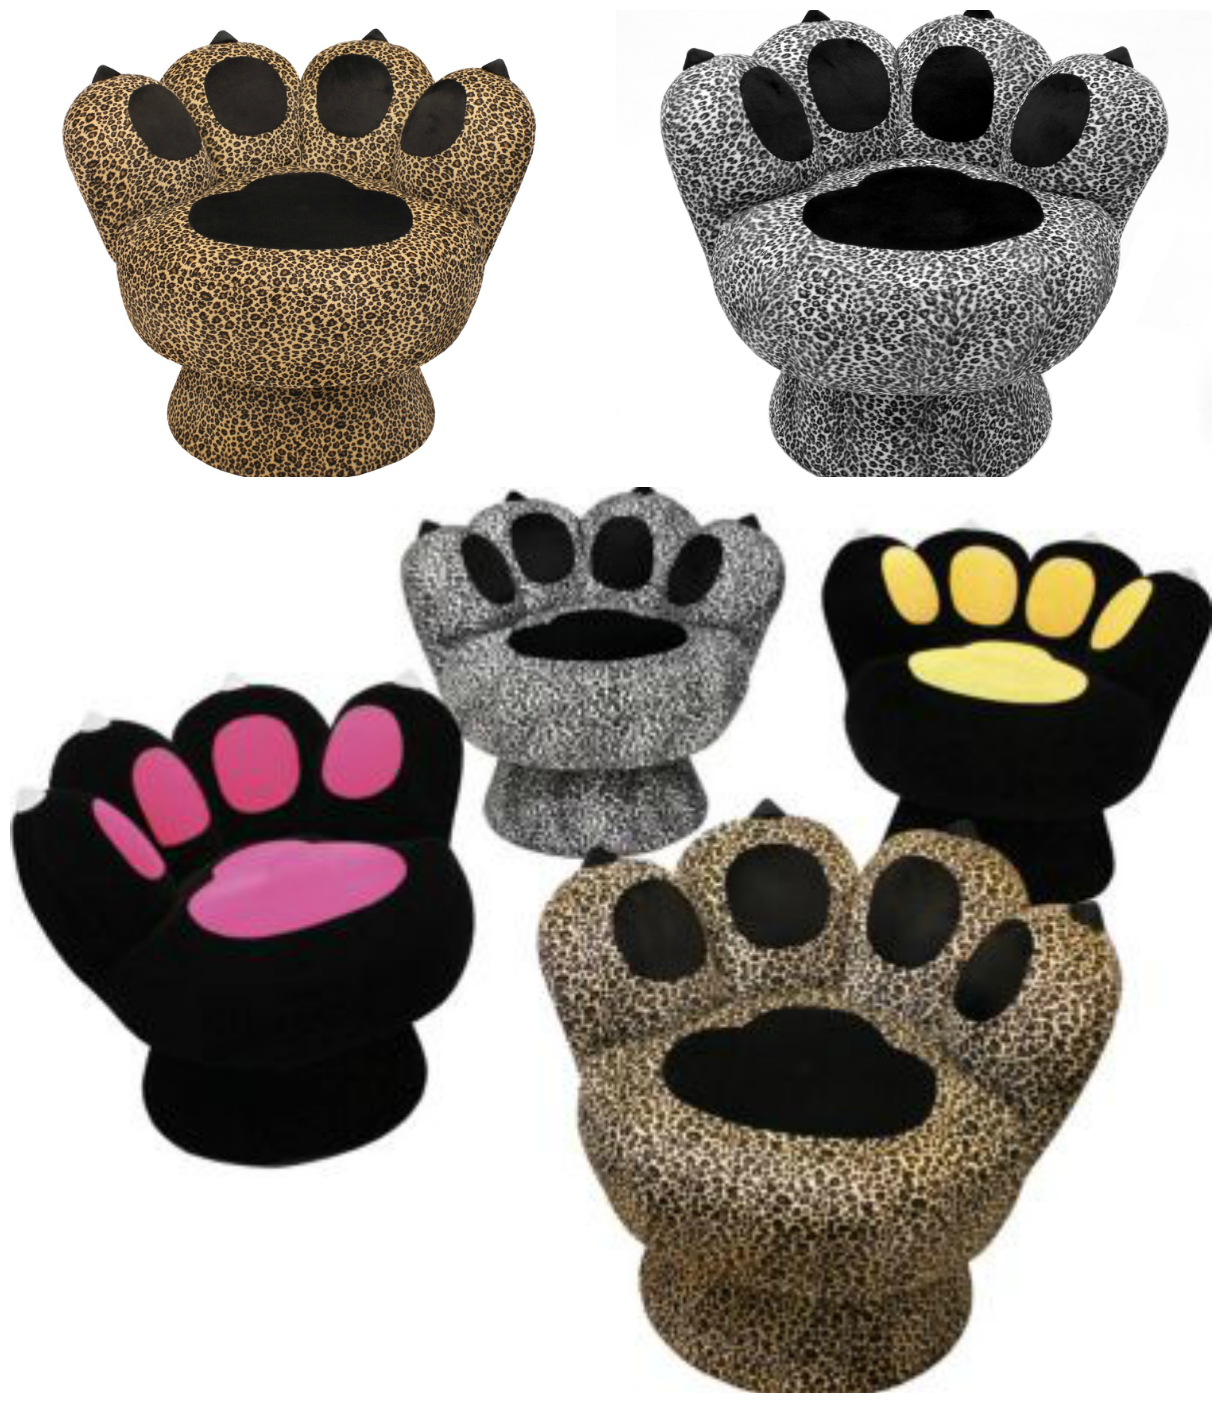 Superior Paw Shaped Chair Designs